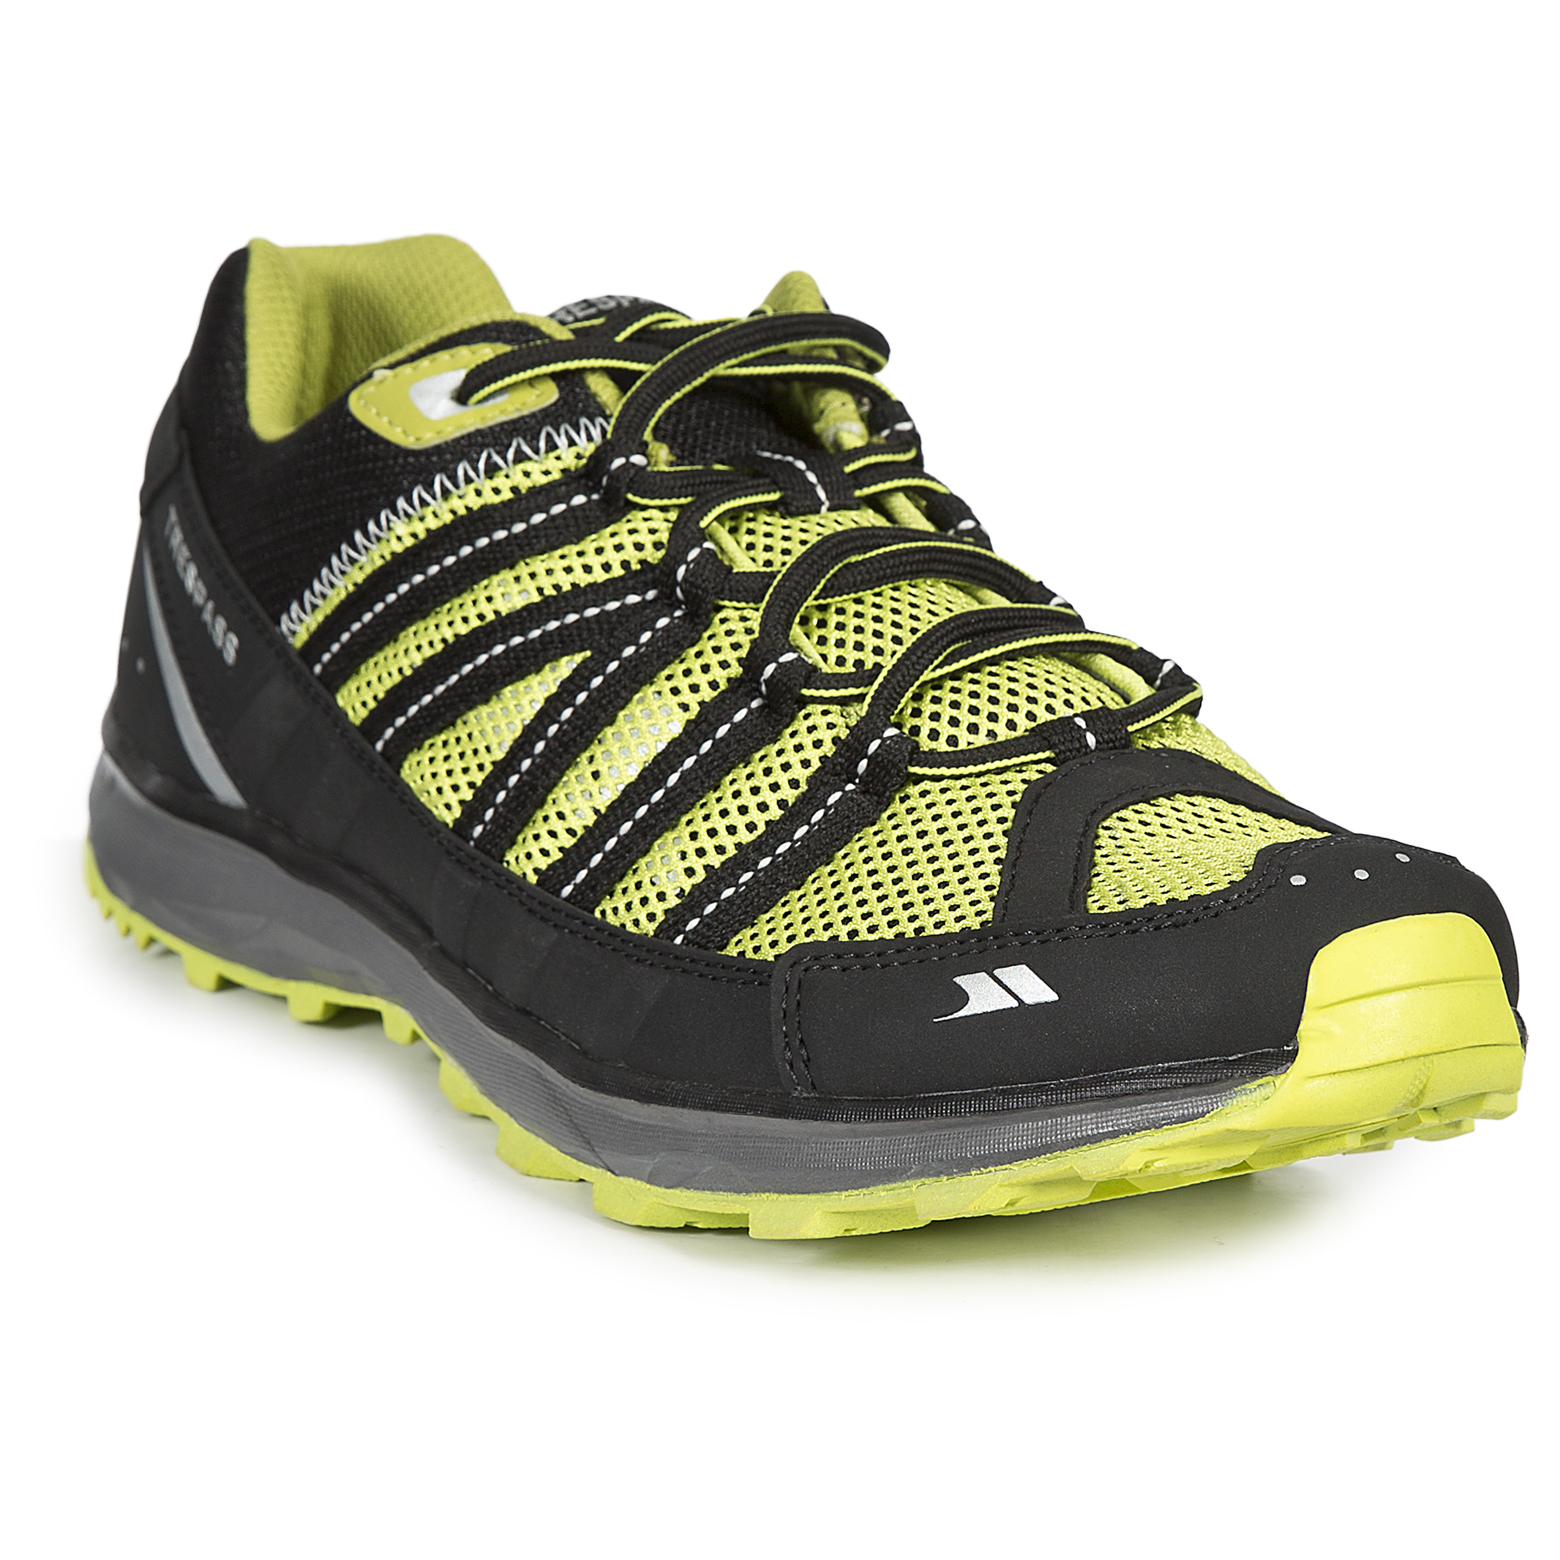 Trespass-Pace-Mens-Active-Trainers-Sports-Lace-Up-Shoes thumbnail 3